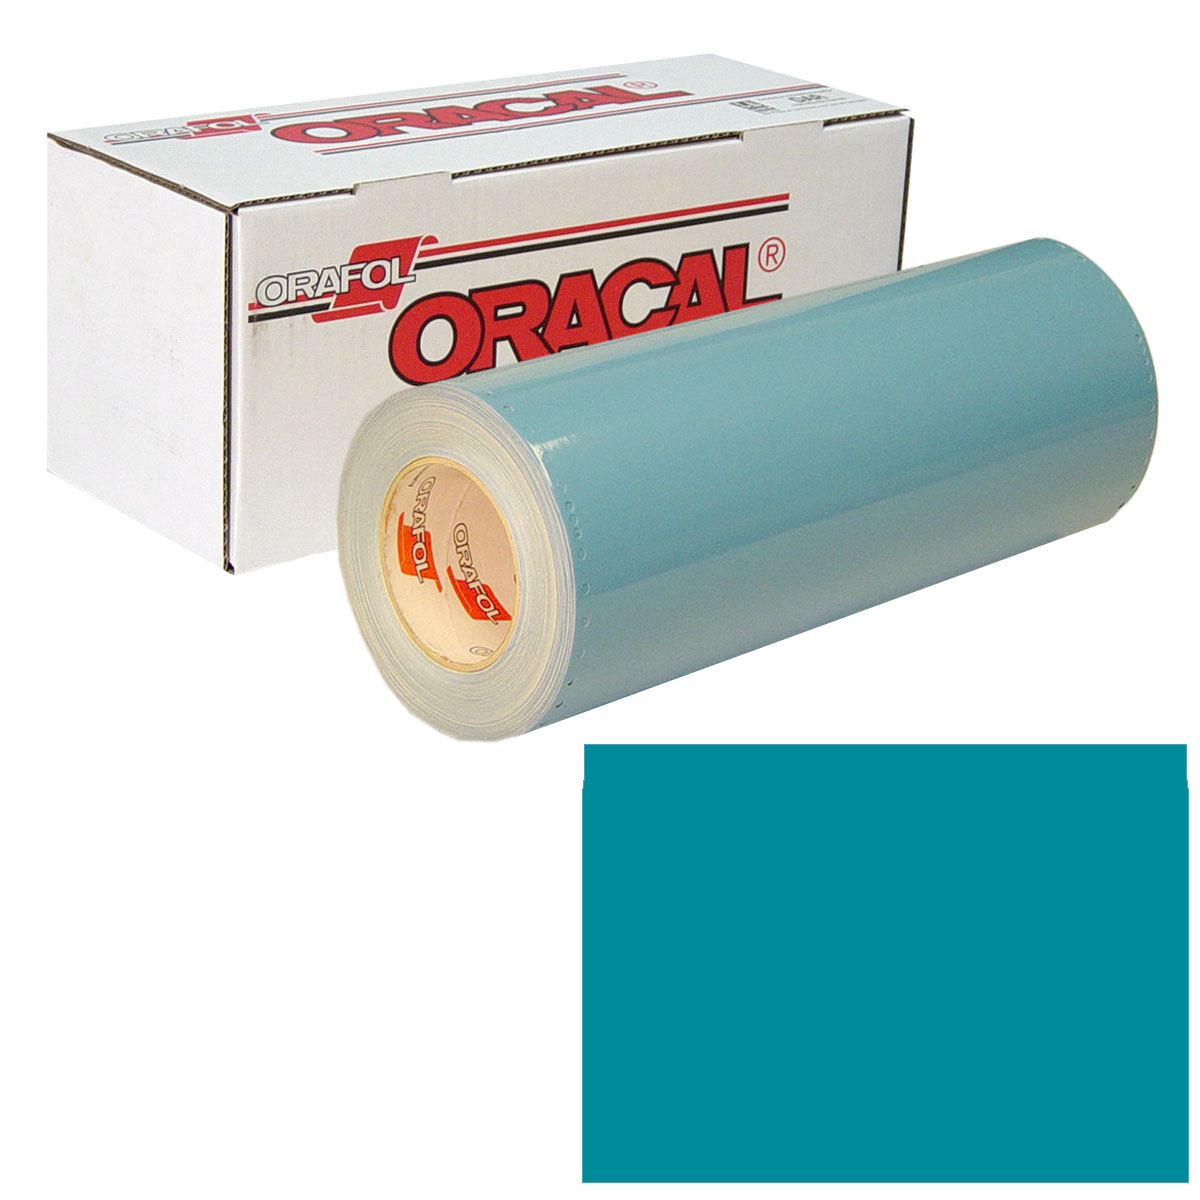 ORACAL 751 Unp 24in X 10yd 066 Turquoise Blue